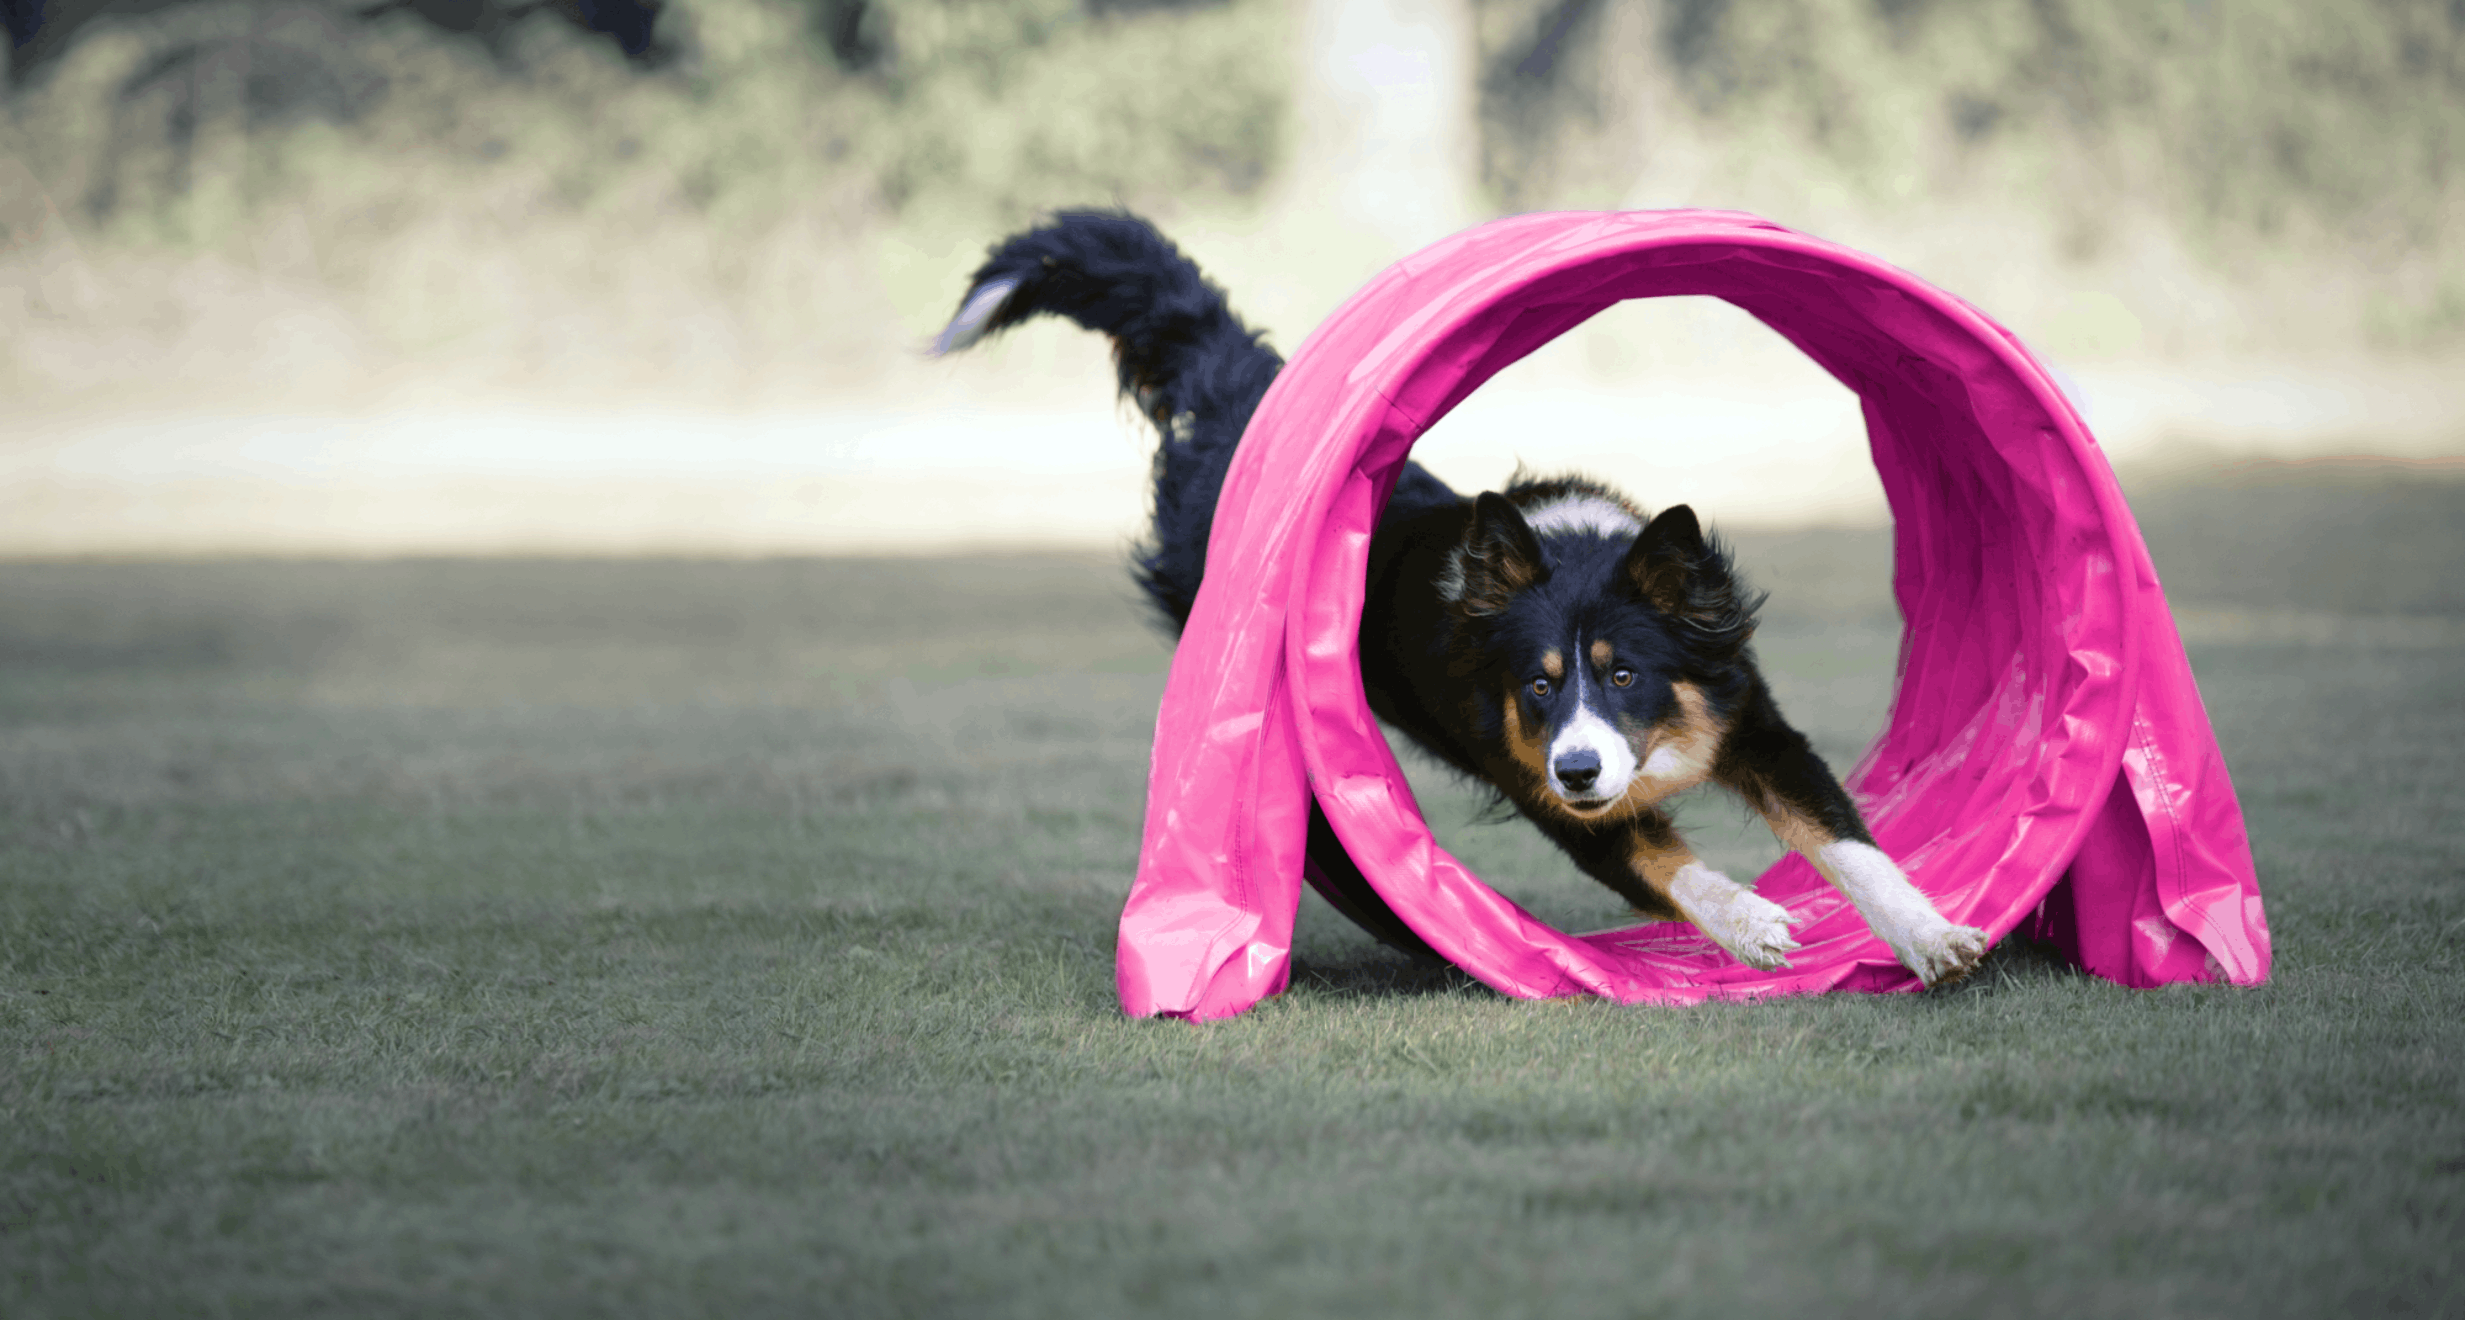 Black Sheepdog  coming out of a pink agility tunnel